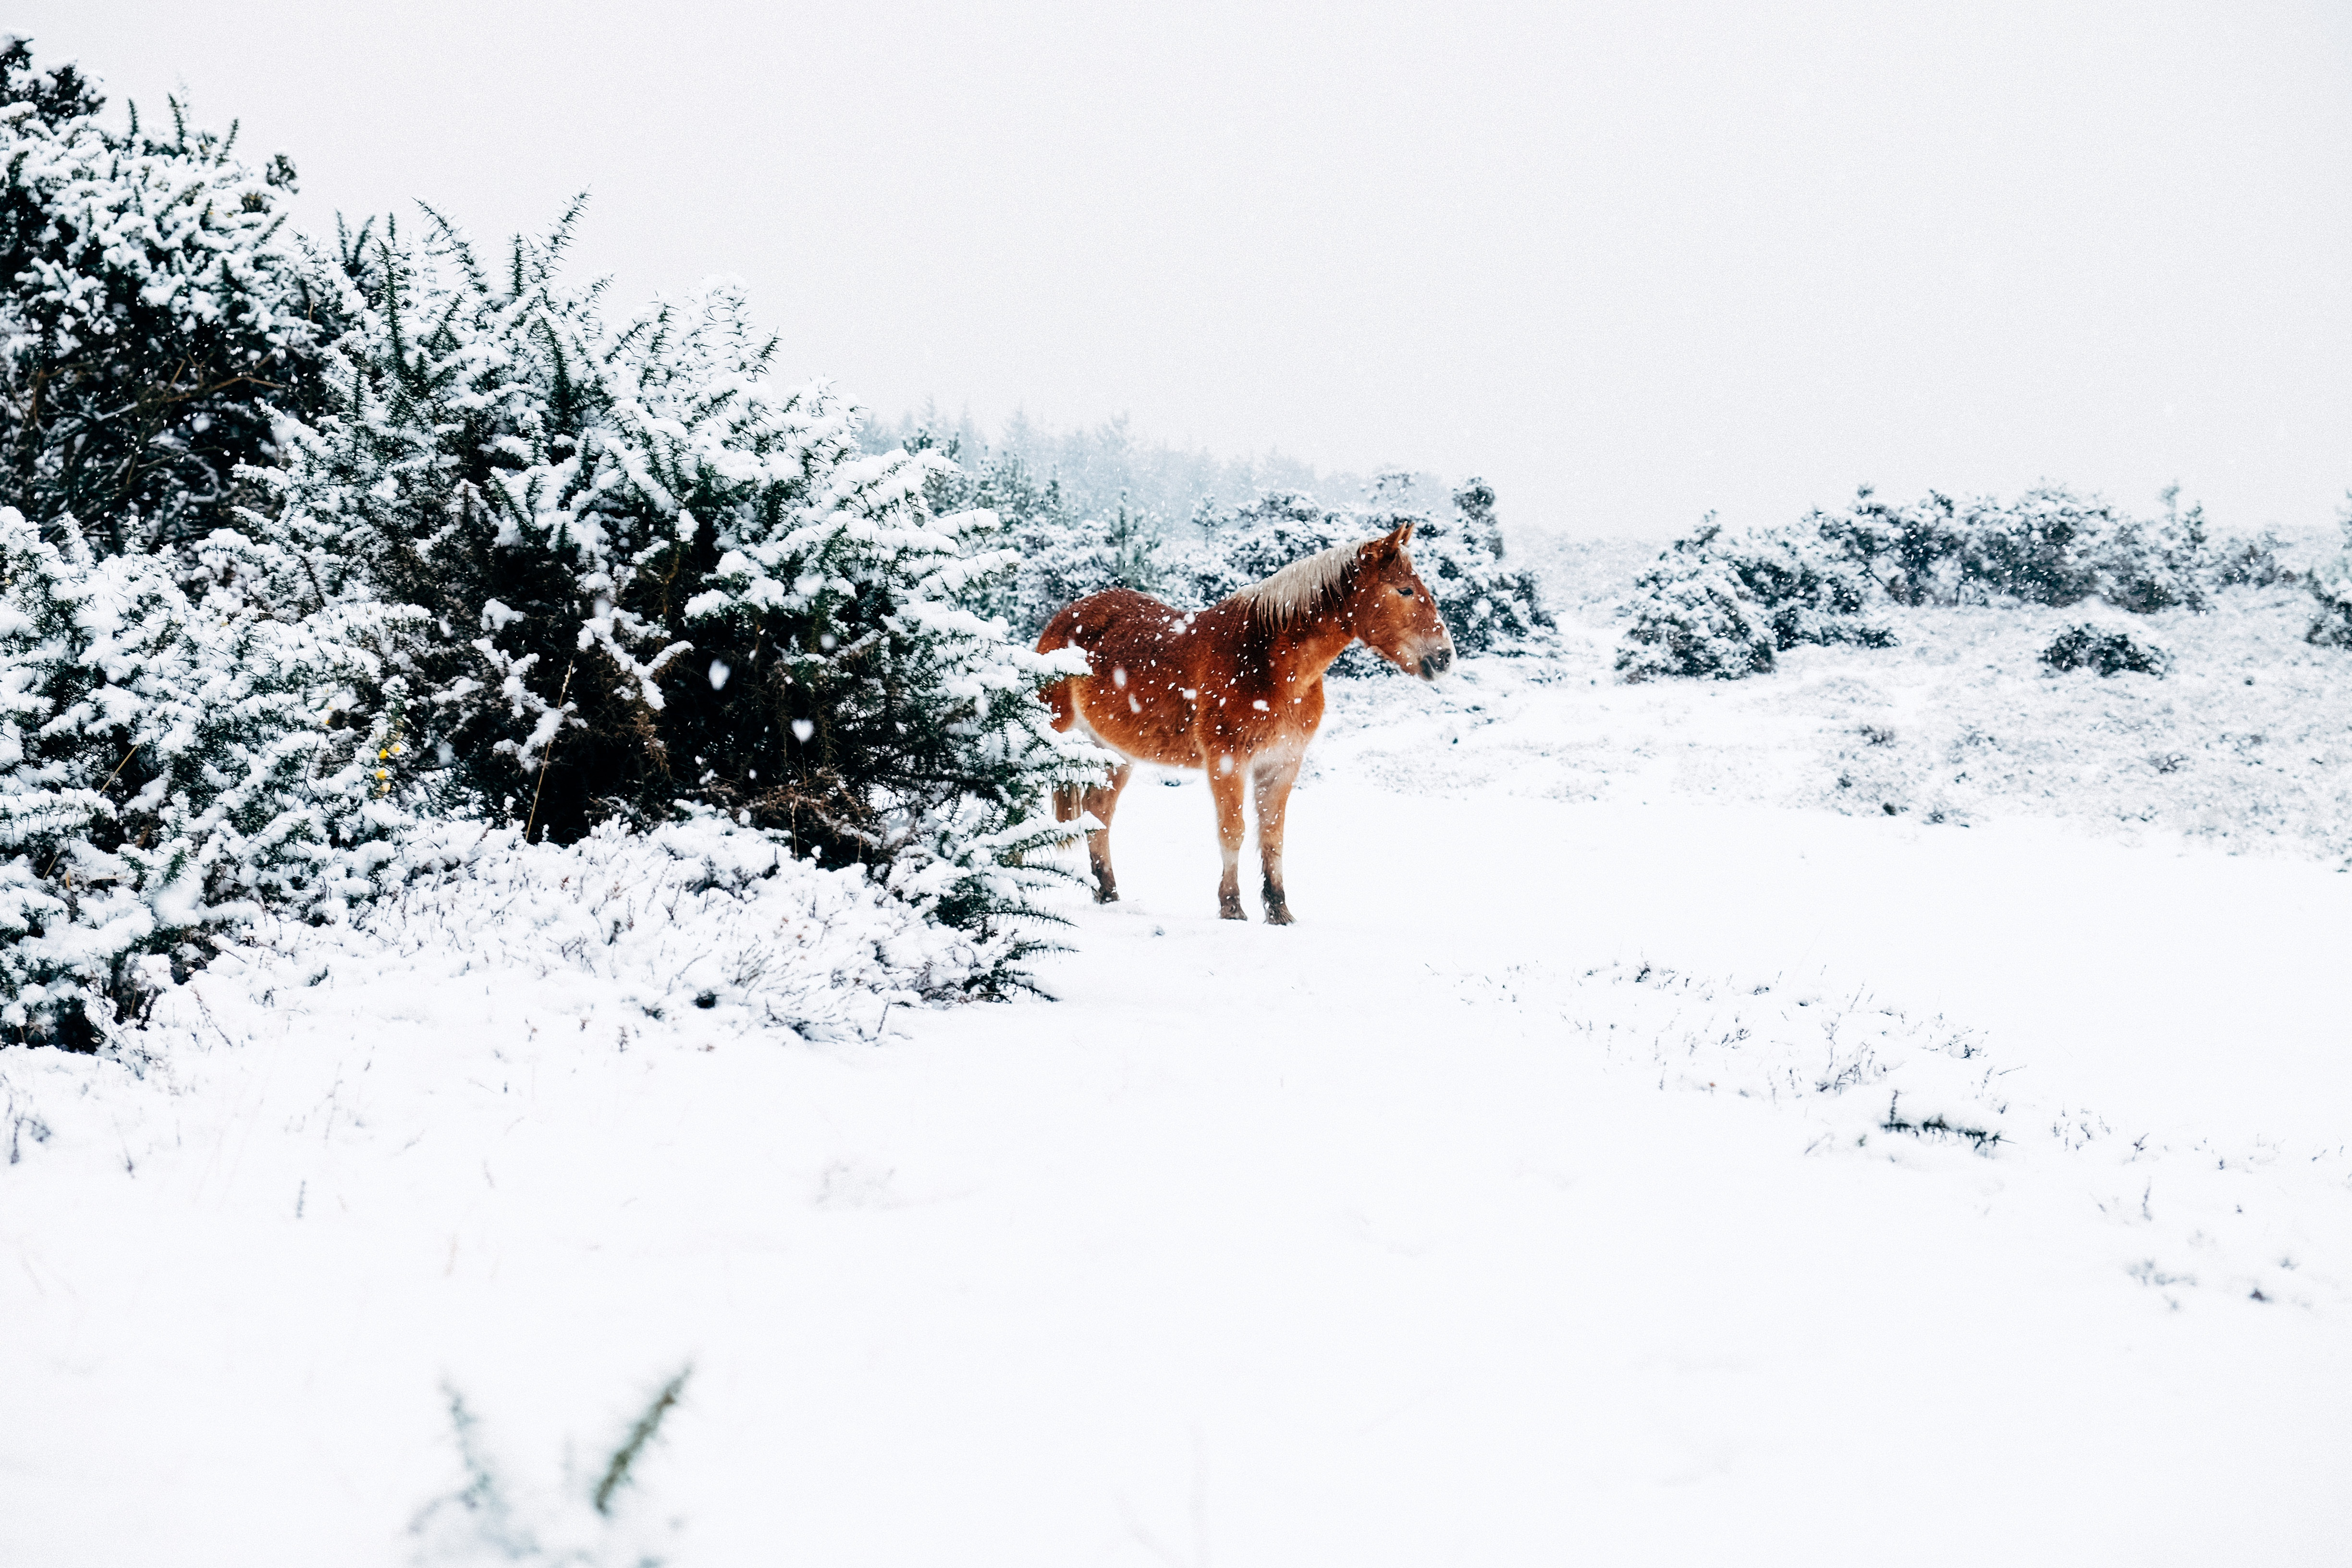 Horse In Snow, White, Winter, Snow, Ice, HQ Photo